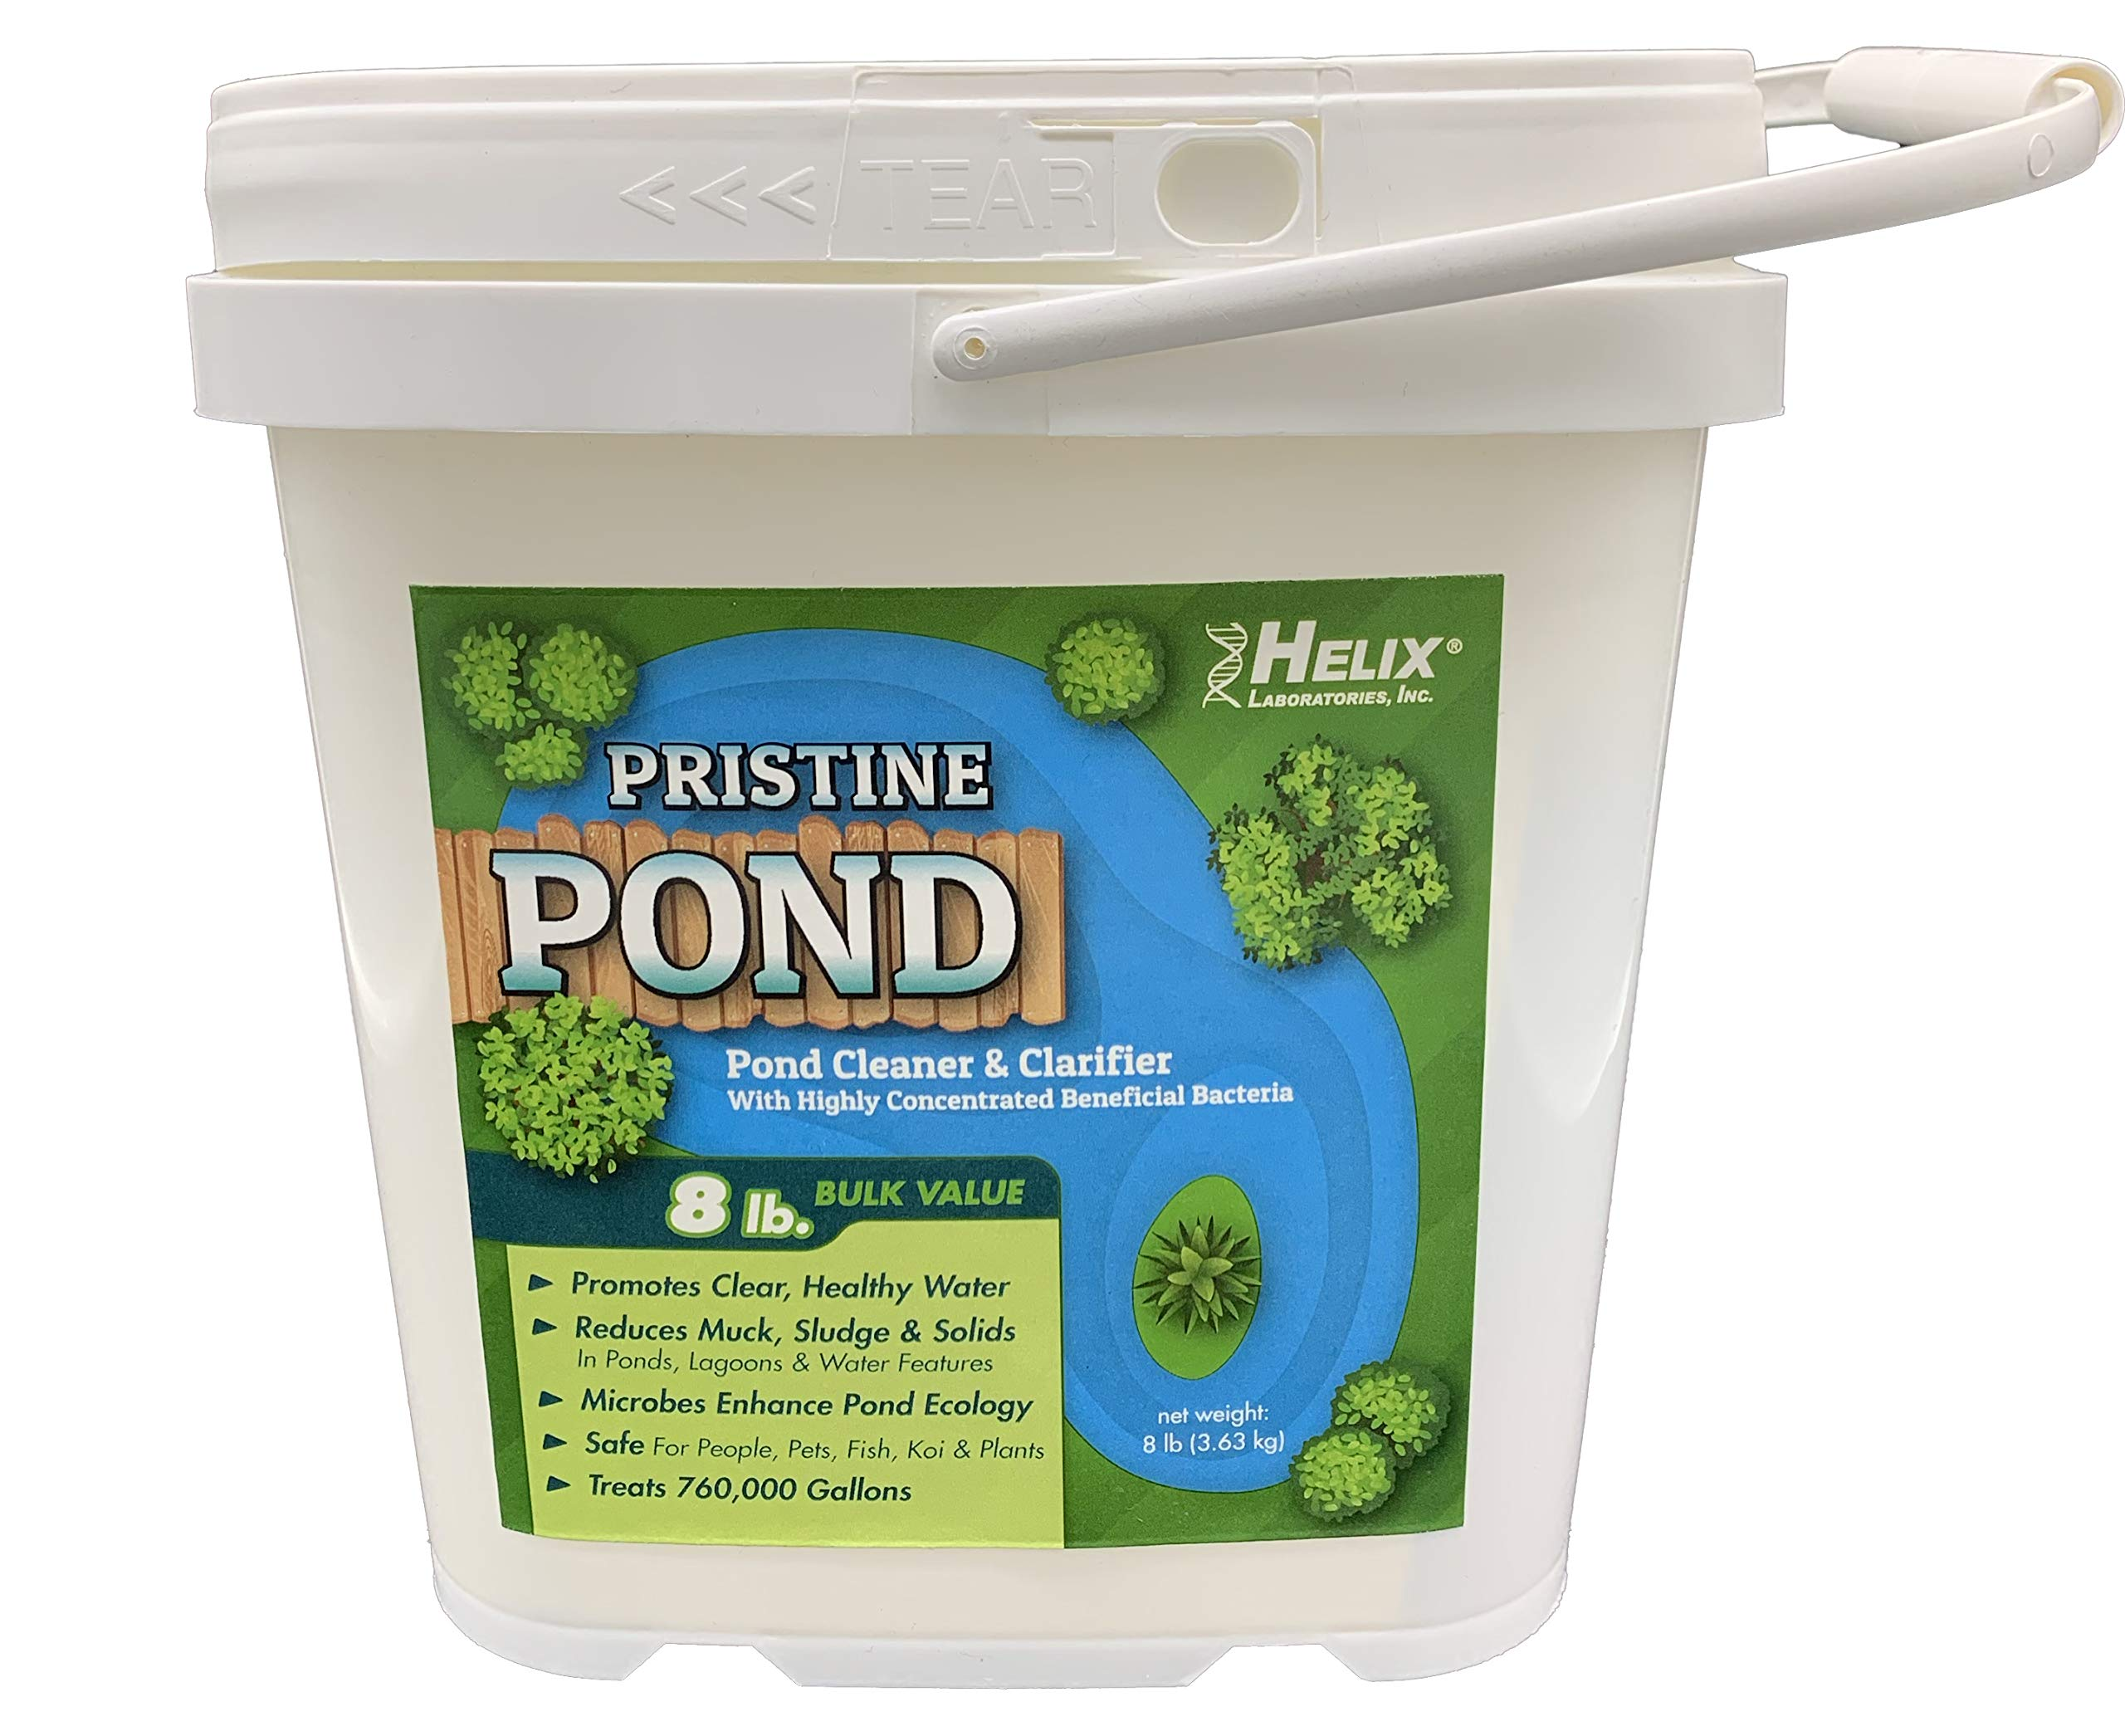 Pristine Pond Cleaner and Clarifier with Highly Concentrated Beneficial Bacteria. Reduces Muck, Solids, and Sludges in Lagoons, Ponds, Water Features. Safe for Koi. Treats up to 760,000 gallons by HELIX LABORATORIES, INC.